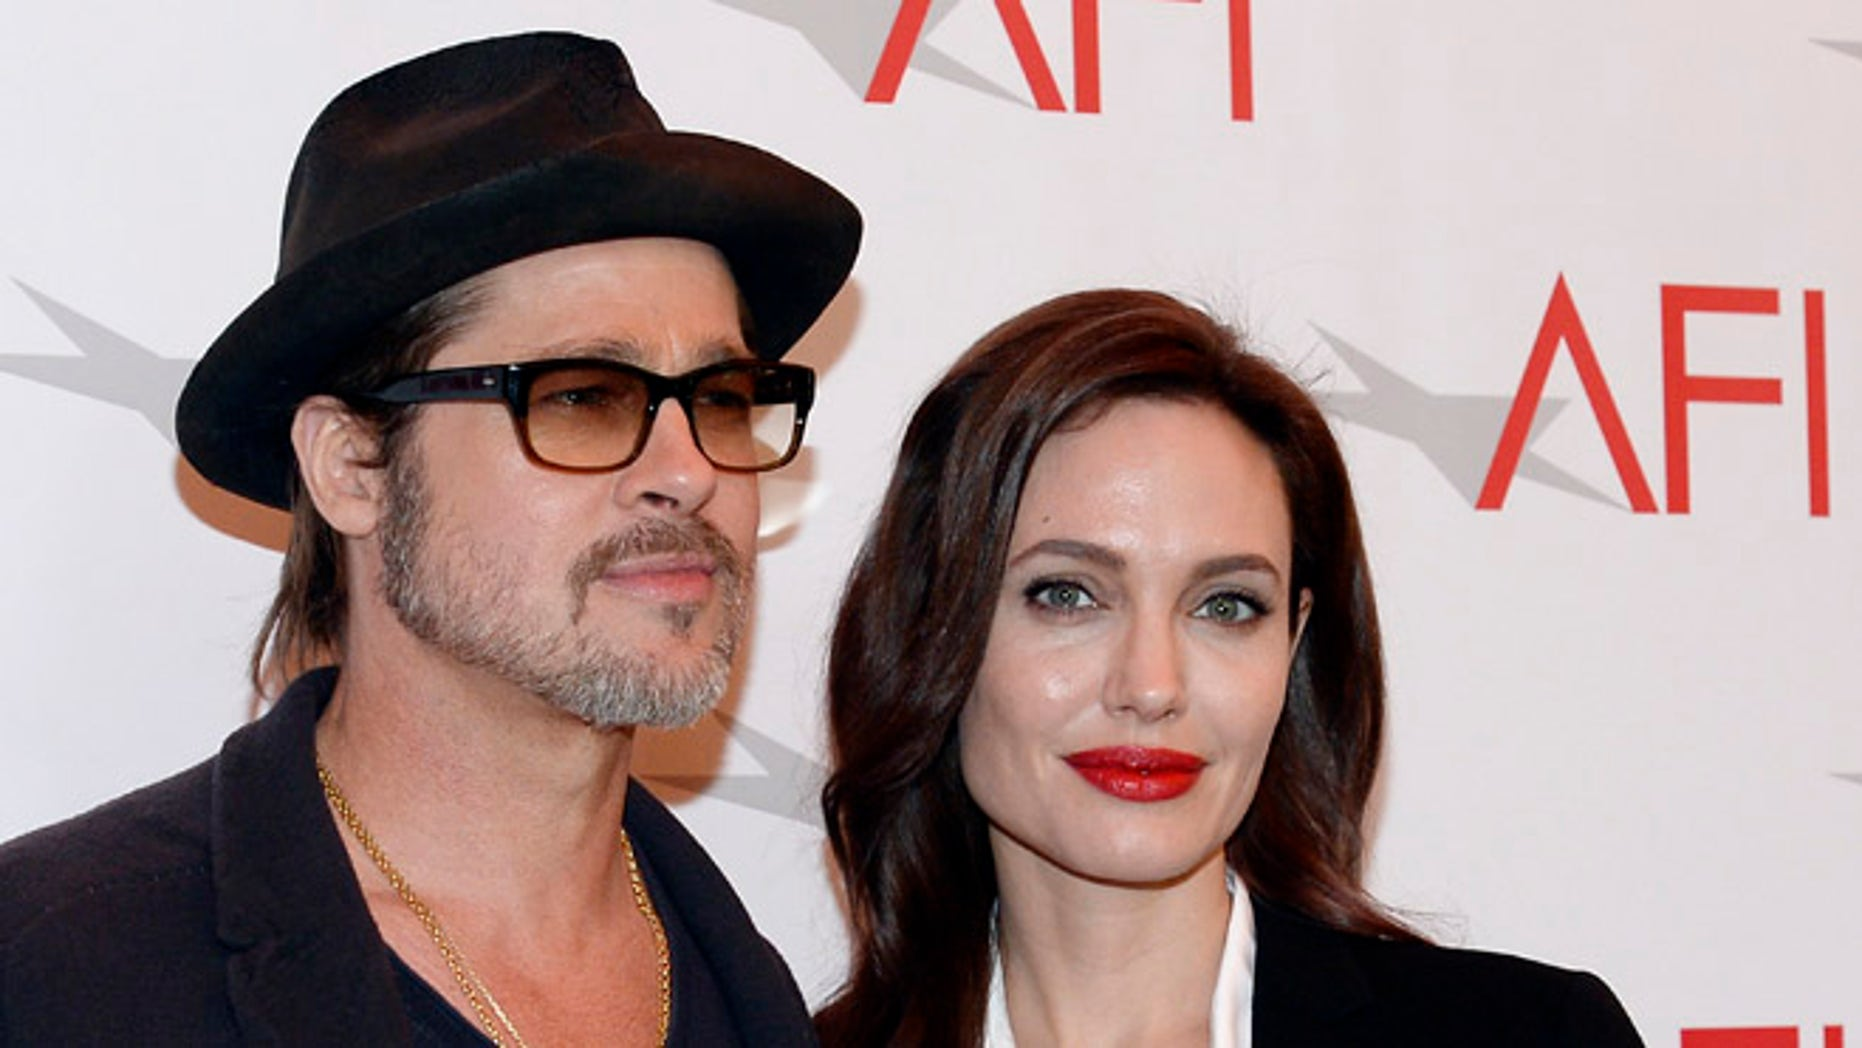 Brad Pitt and Angelina Jolie at the AFI Awards in 2015.